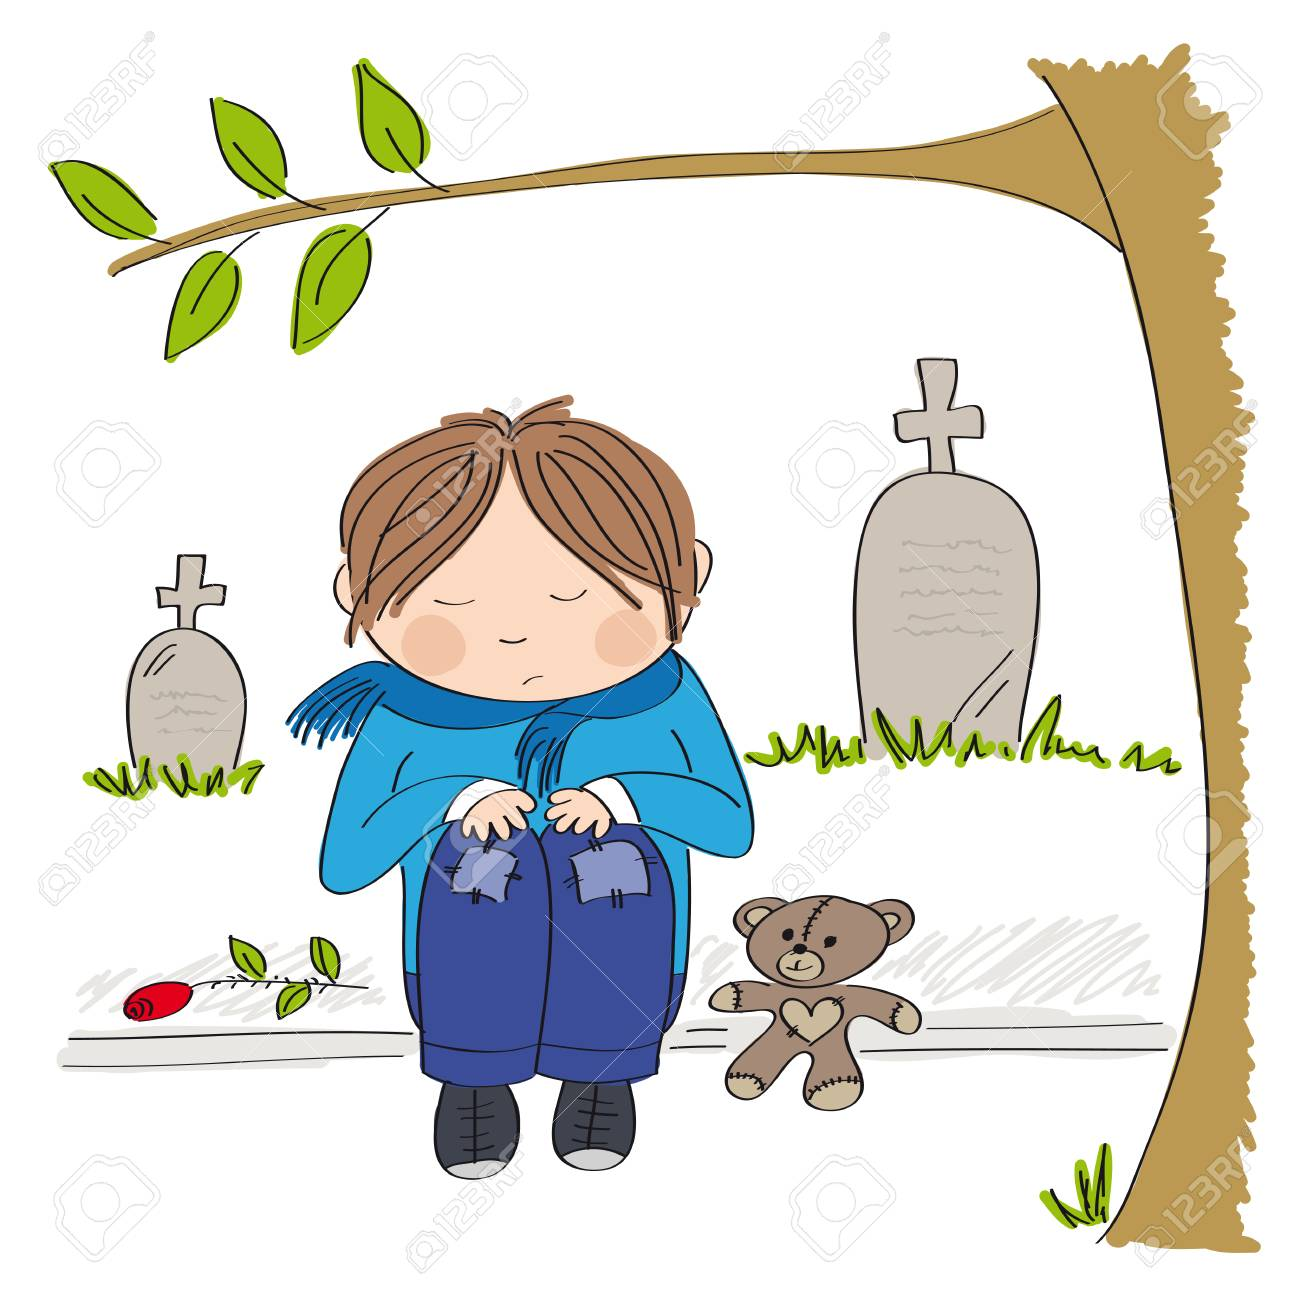 Sad Boy Sitting In A Corner Royalty Free Cliparts, Vectors, And Stock  Illustration. Image 114992884.